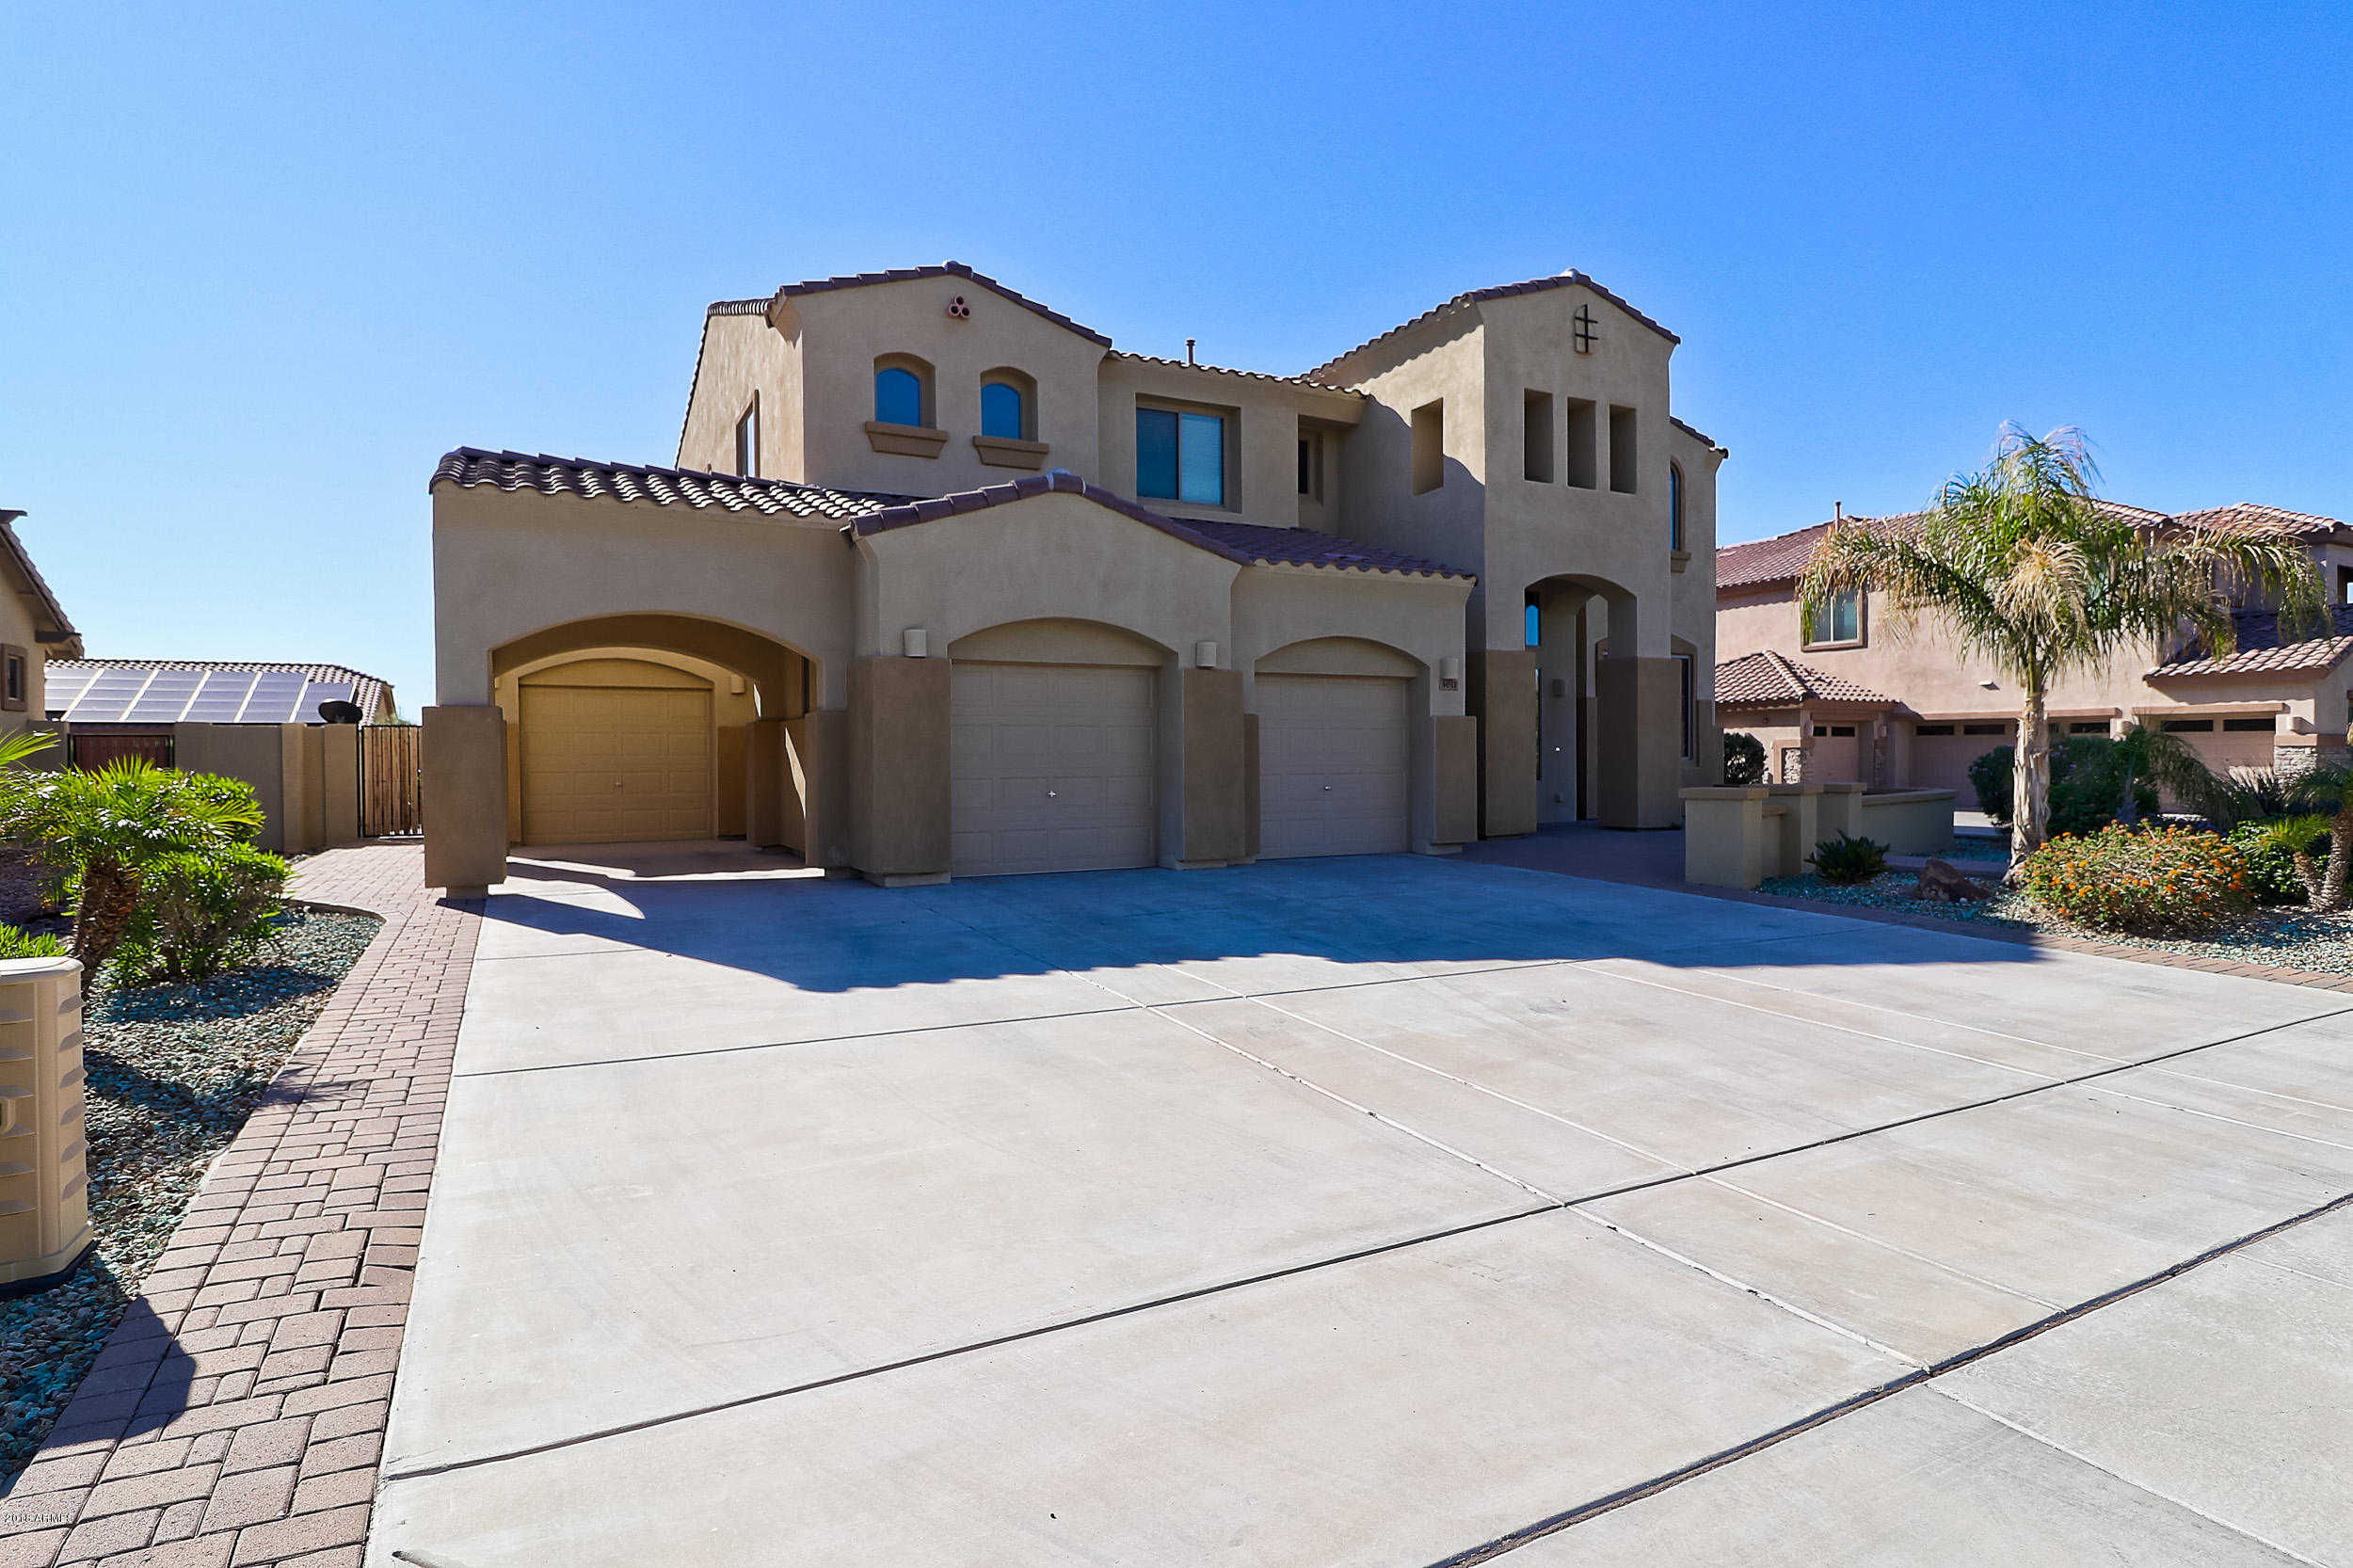 $519,900 - 4Br/3Ba - Home for Sale in Stetson Valley Parcels 7 8 9 10, Phoenix